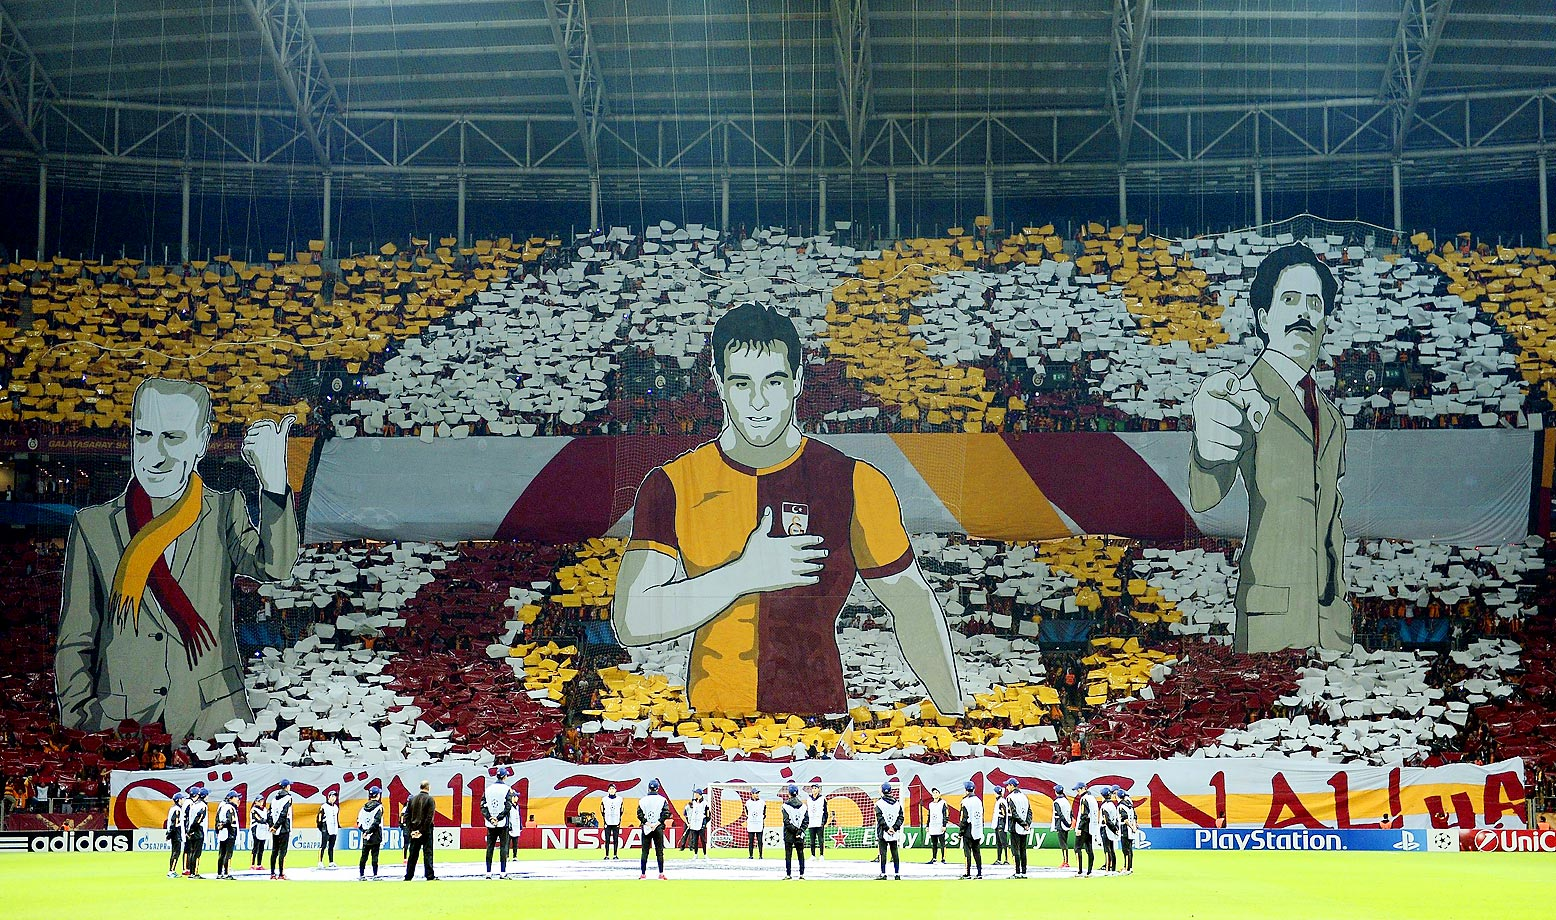 Galatasaray fans support their team during the UEFA Champions League Group D match between Borussia Dortmund and Galatasaray at the Turk Telekom Arena in Istanbul.